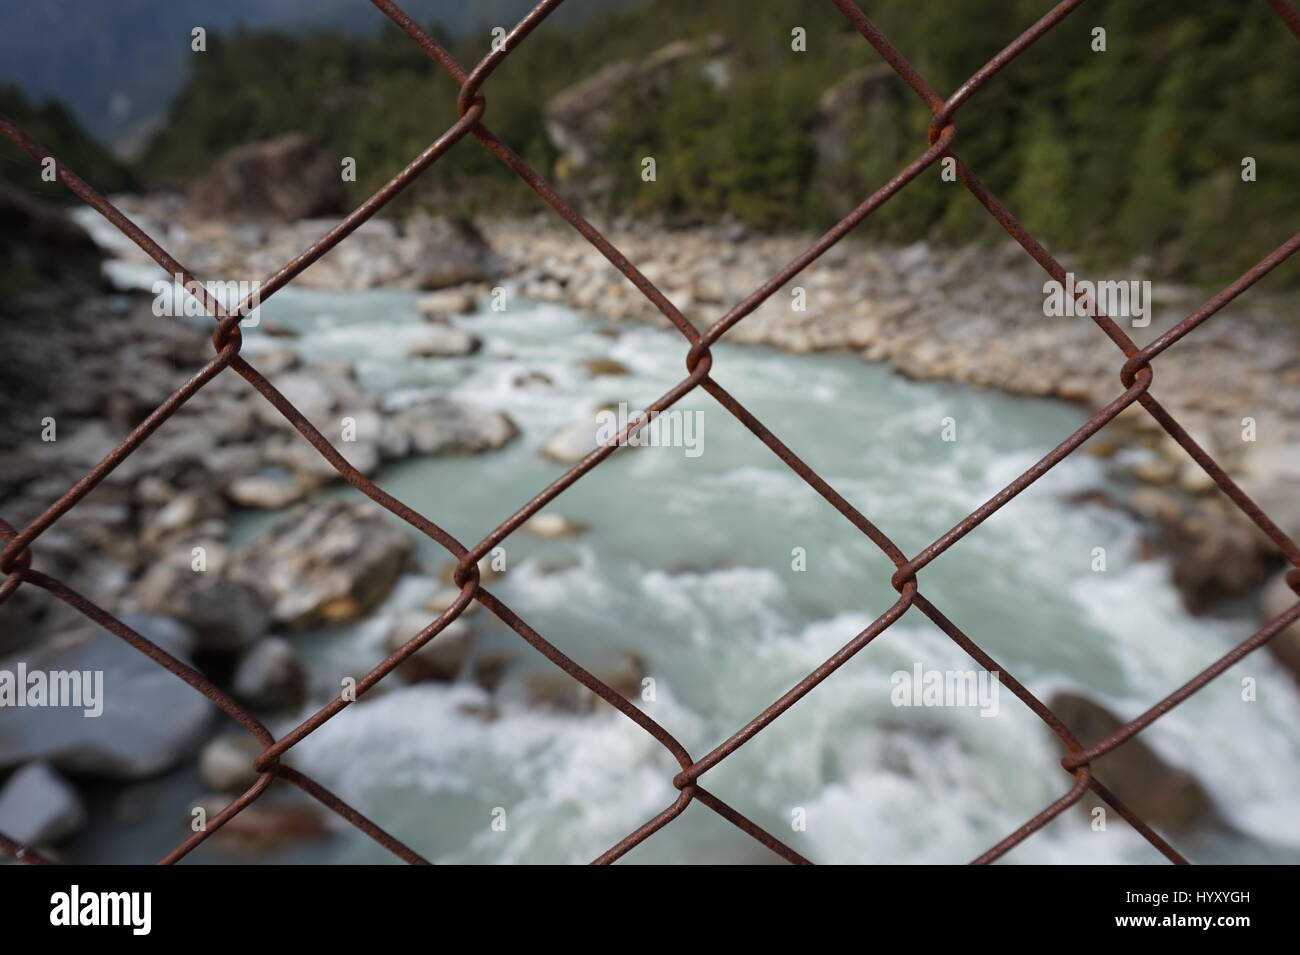 Looking out on the river through a wire fence - Stock Image